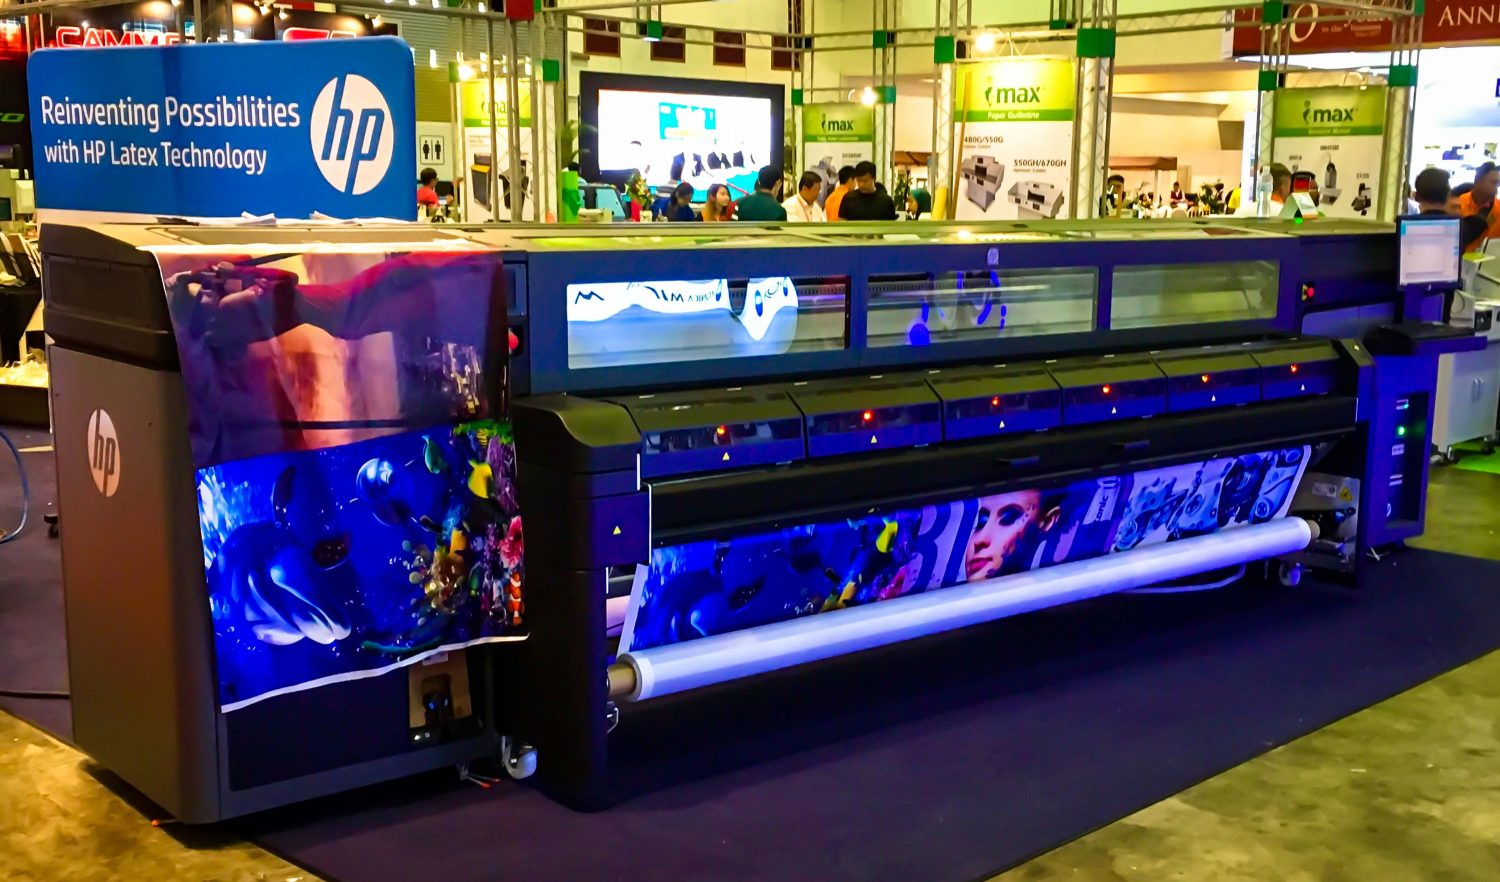 HP Latex 1500